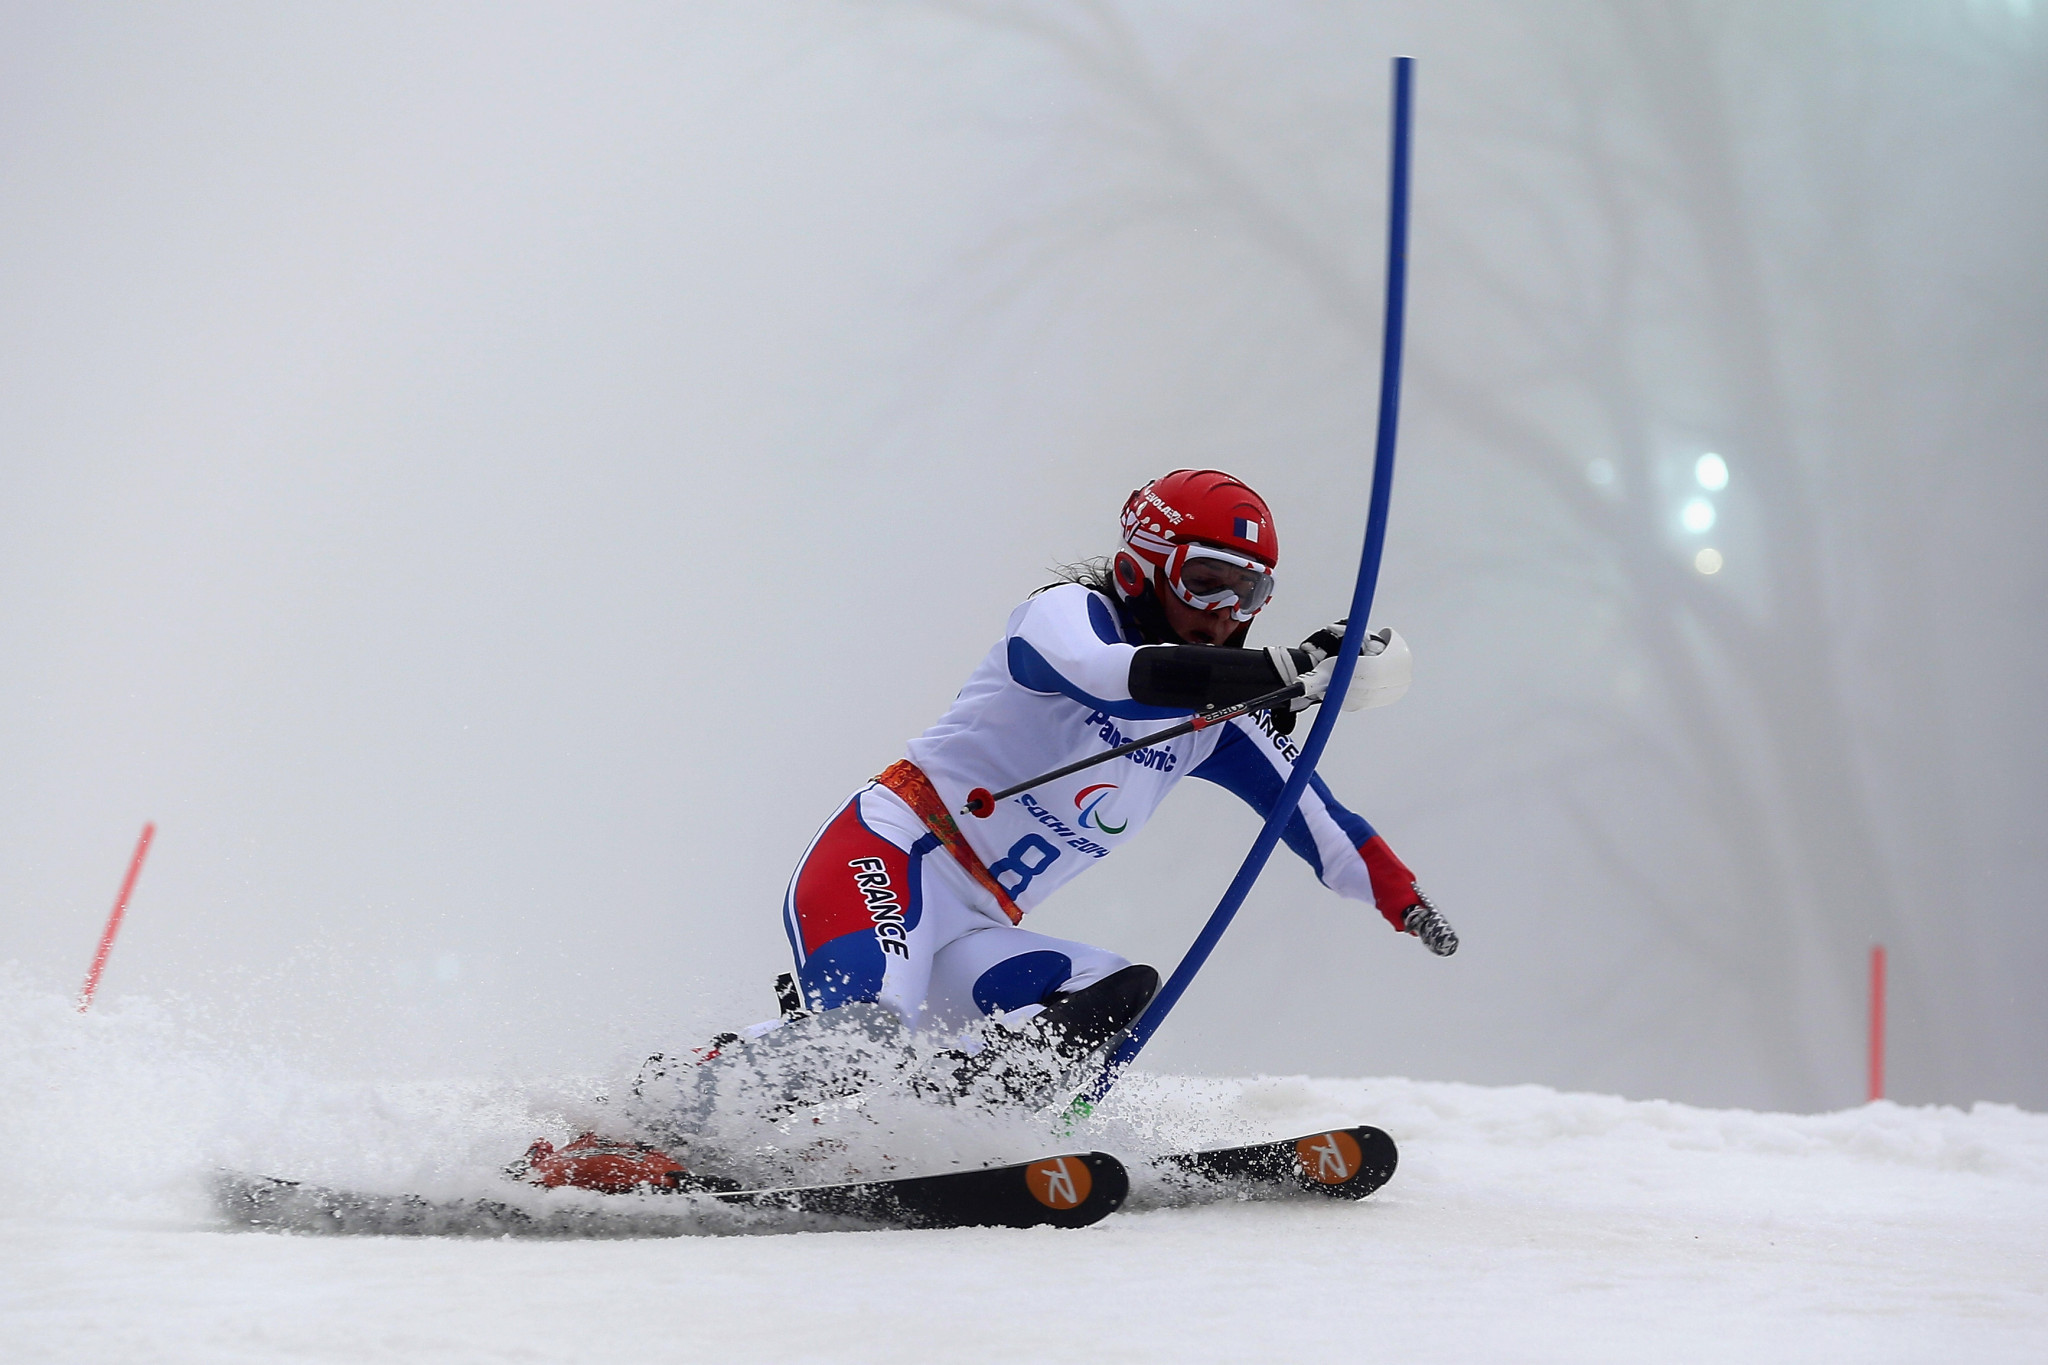 Marie Bochet claimed the women's standing gold medal for hosts France today at the World Para Alpine Skiing World Cup Finals in Morzine ©Getty Images